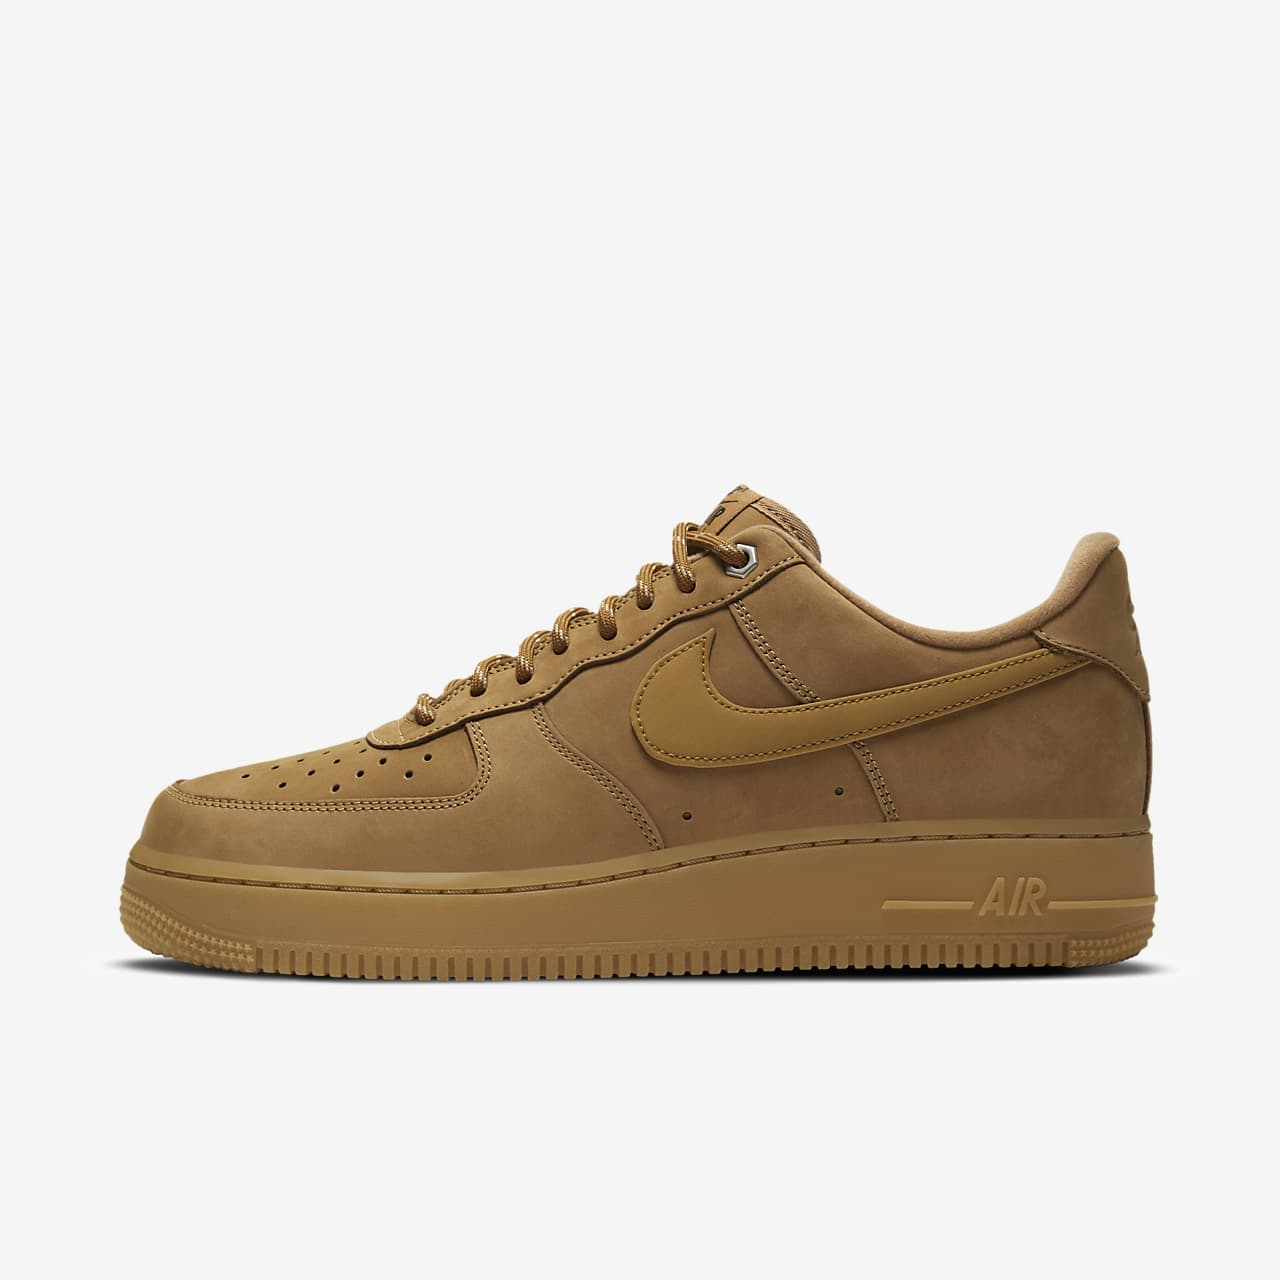 Nike Air Force 1 High Flax | With Sneaker